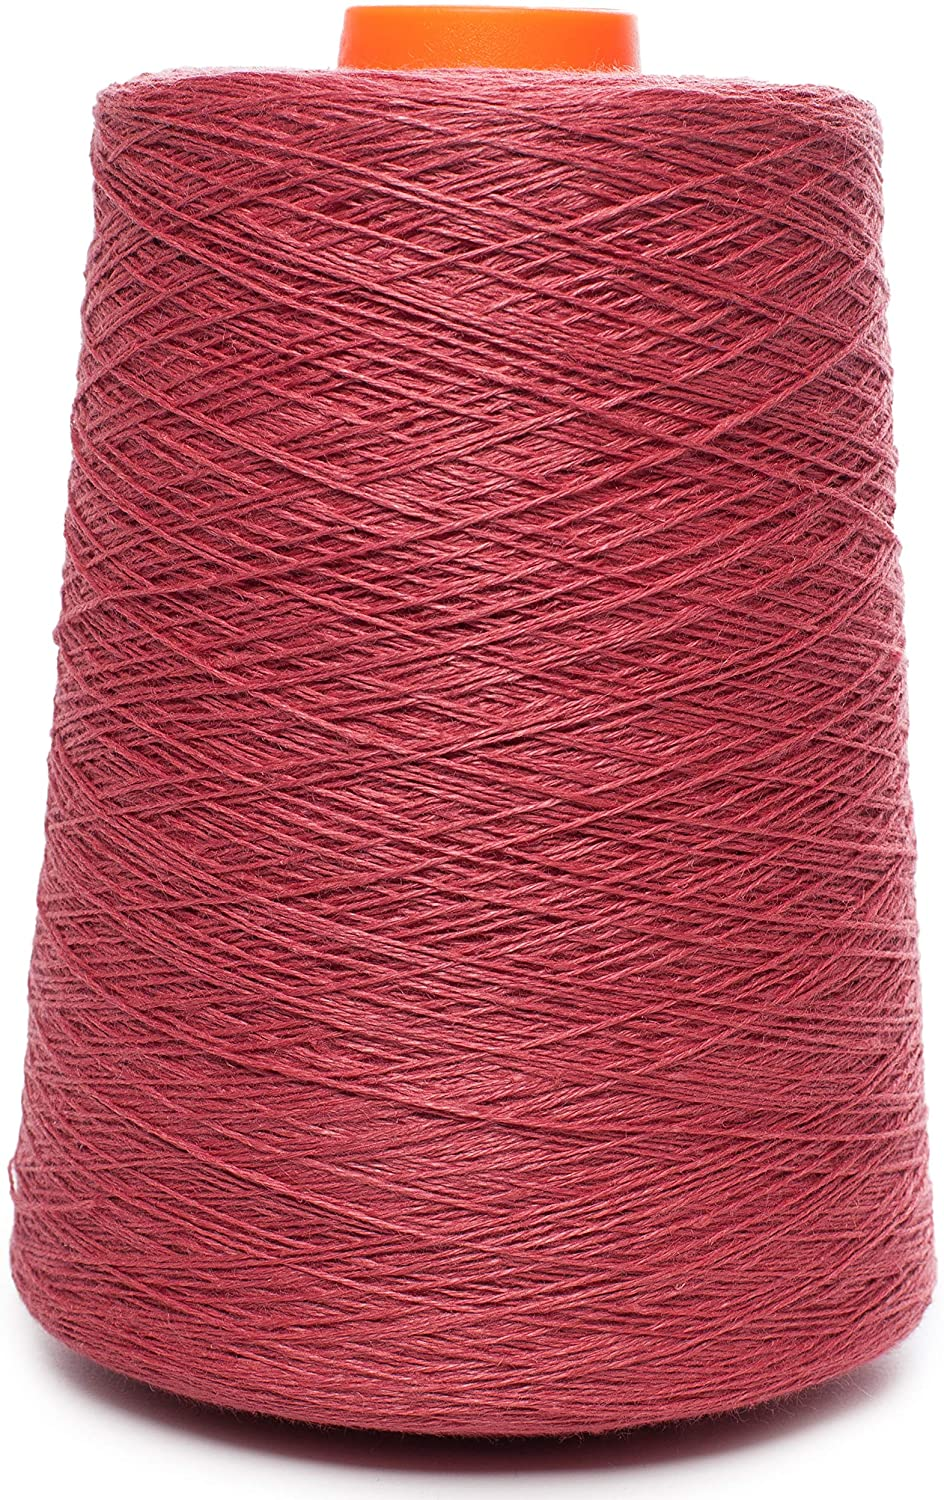 Lusie's Linen Yarn - 100% Linen - 1.15 lb (18oz) Cone - Peony Red - for Weaving, Crocheting, Knitting, Embroidery (2-PLY)